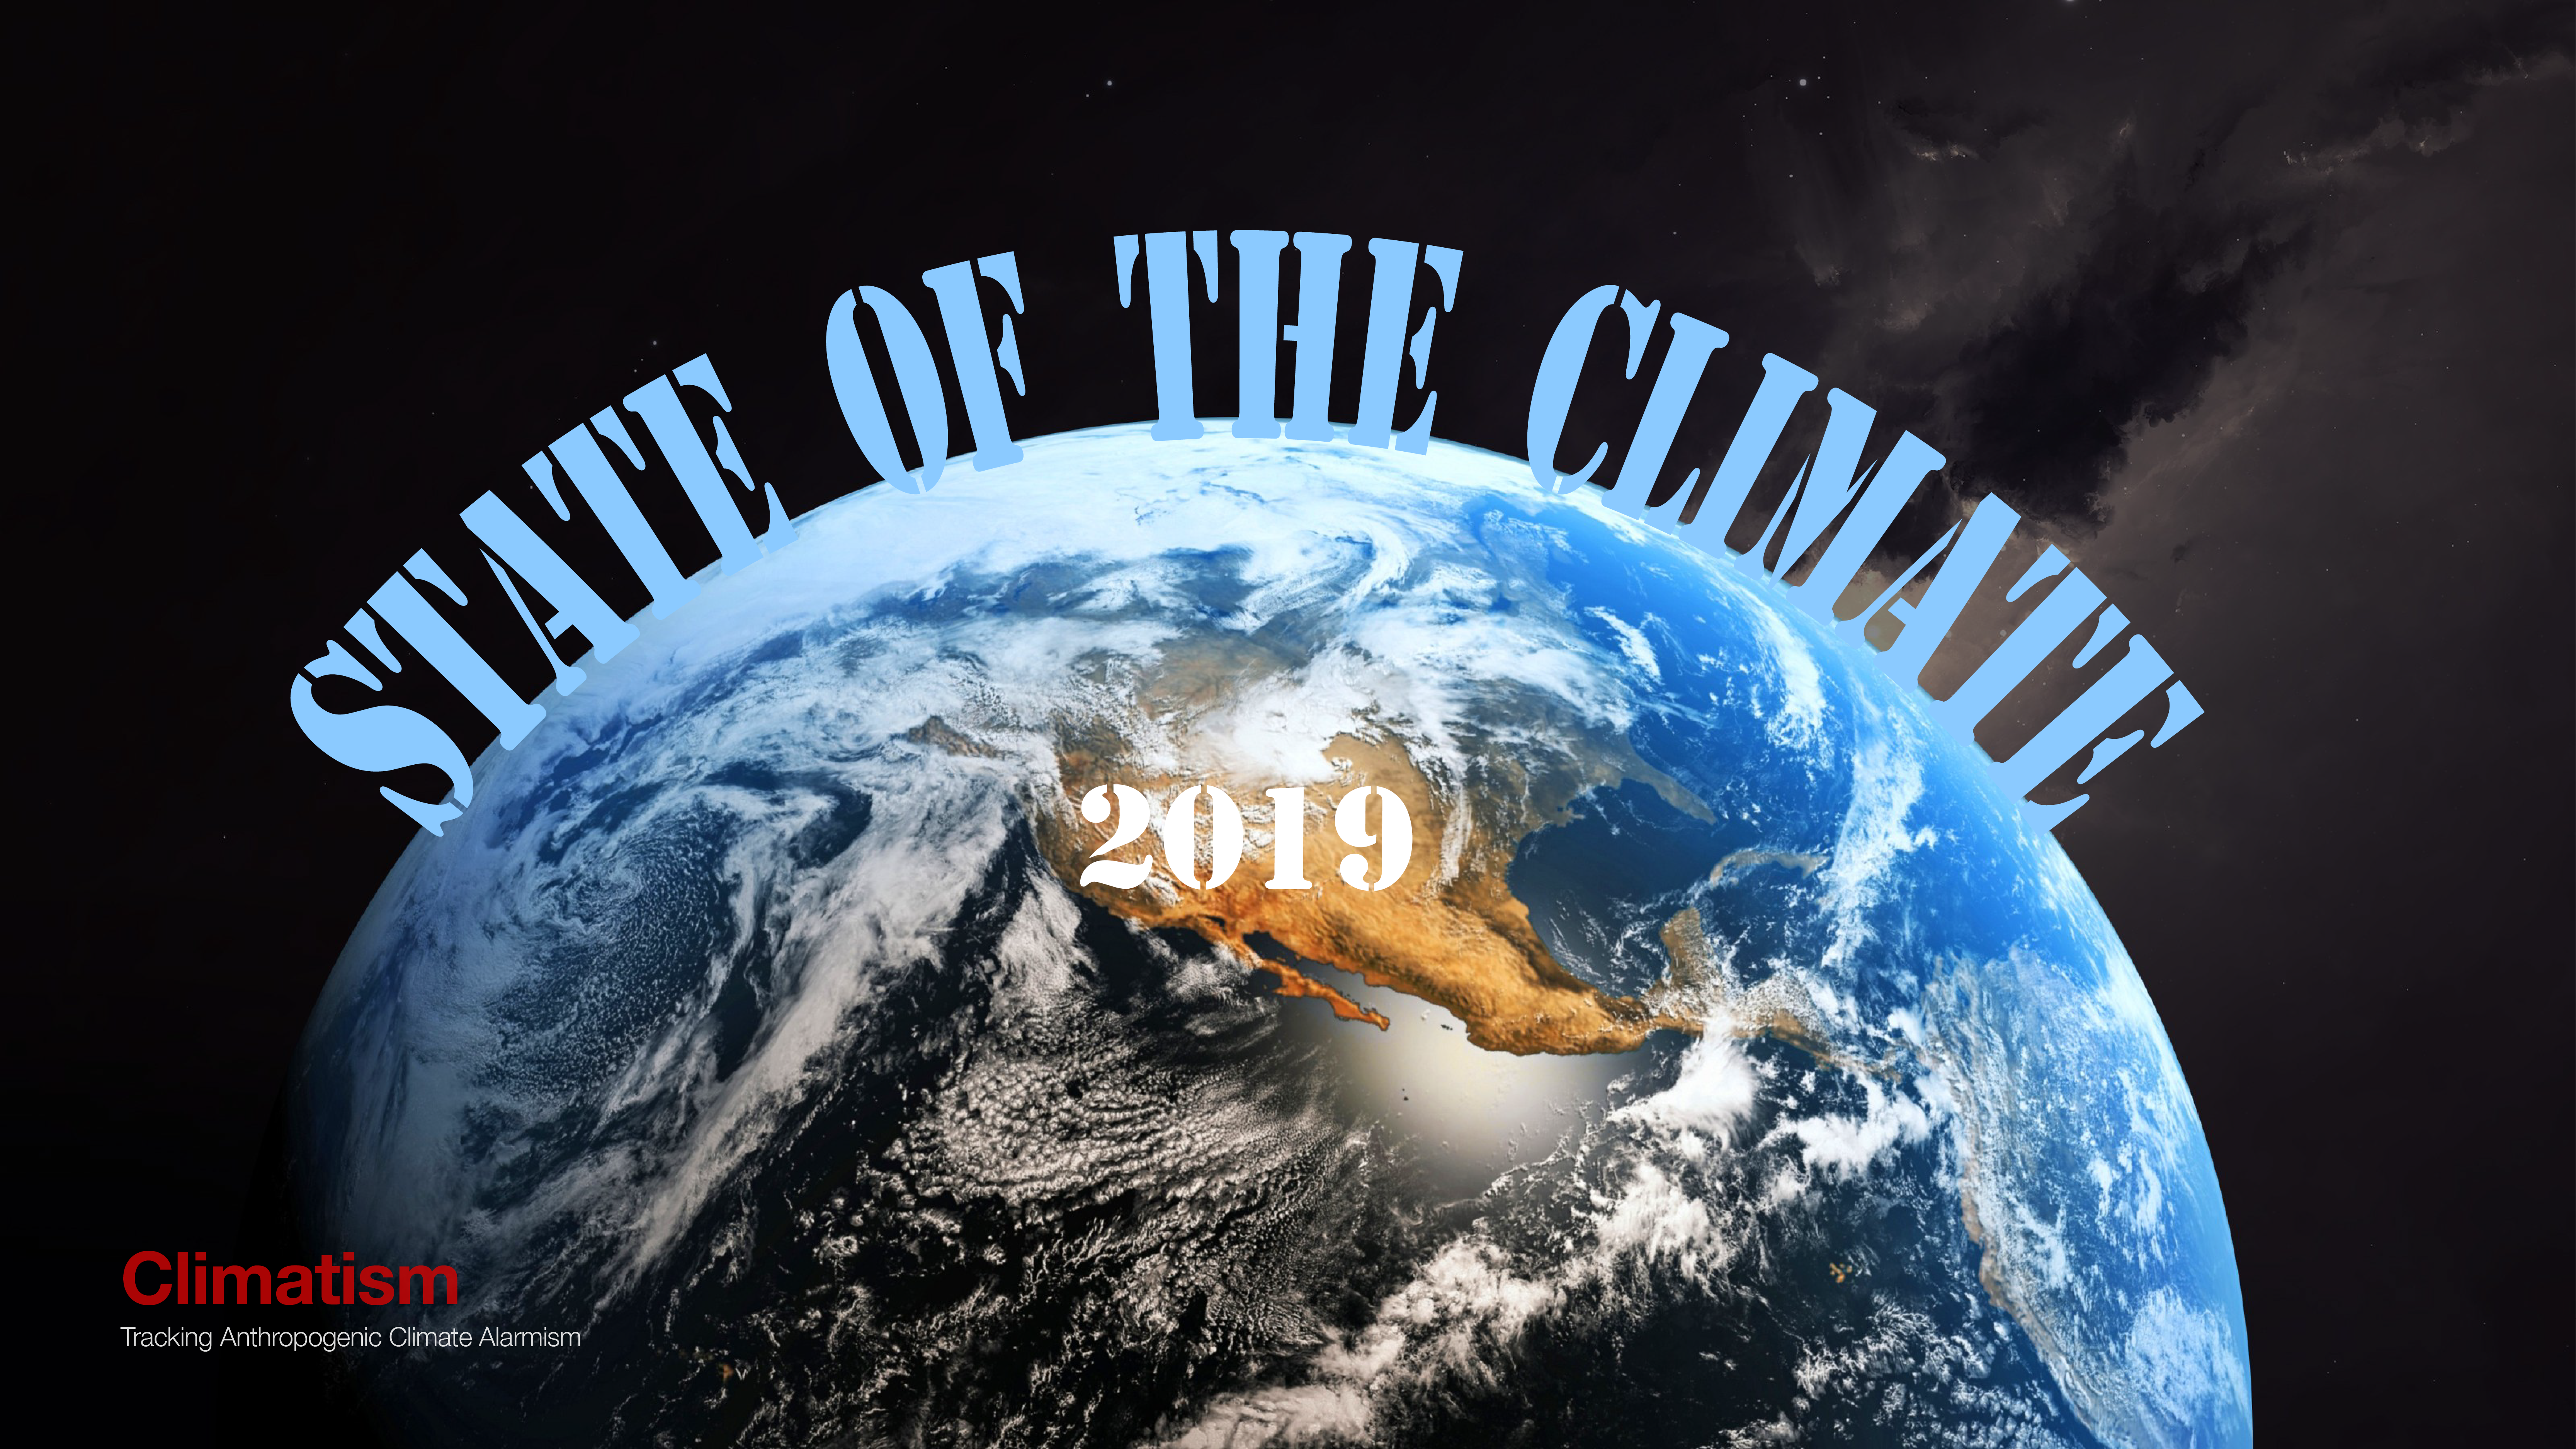 CLIMATISM - State Of The Climate 2019